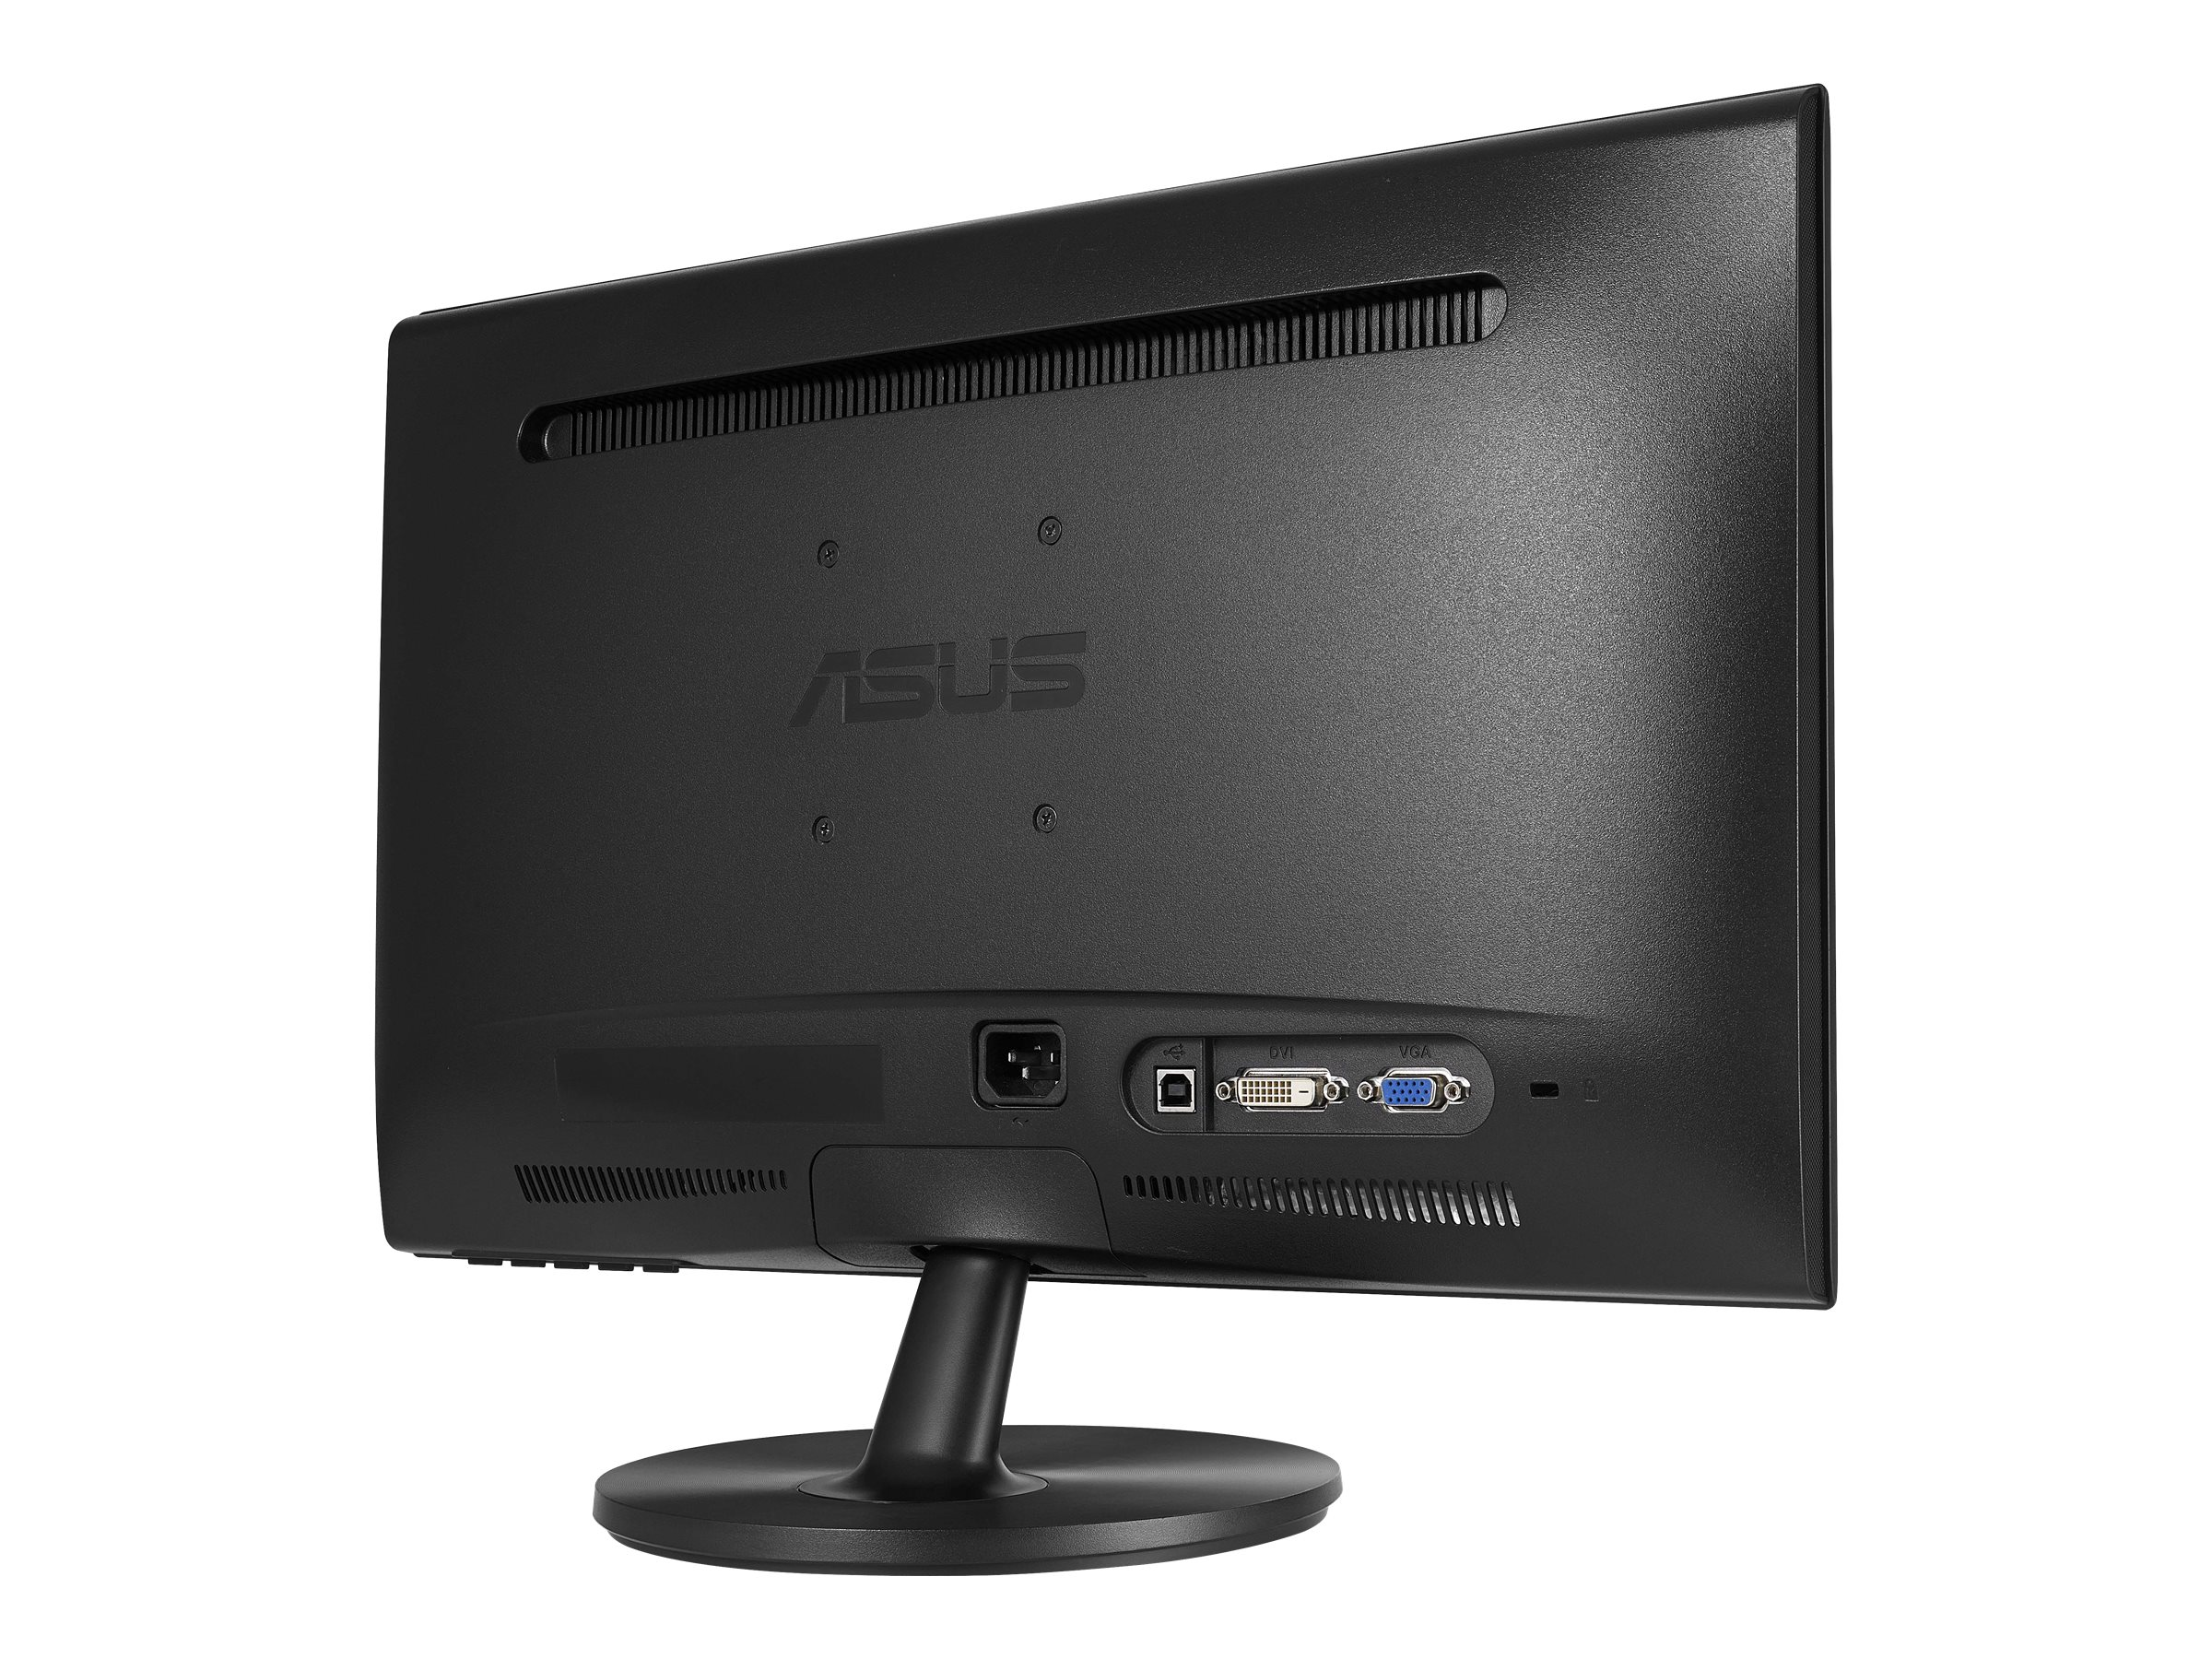 Asus 19.5 VT207N LED-LCD Touchscreen Monitor, Black, VT207N